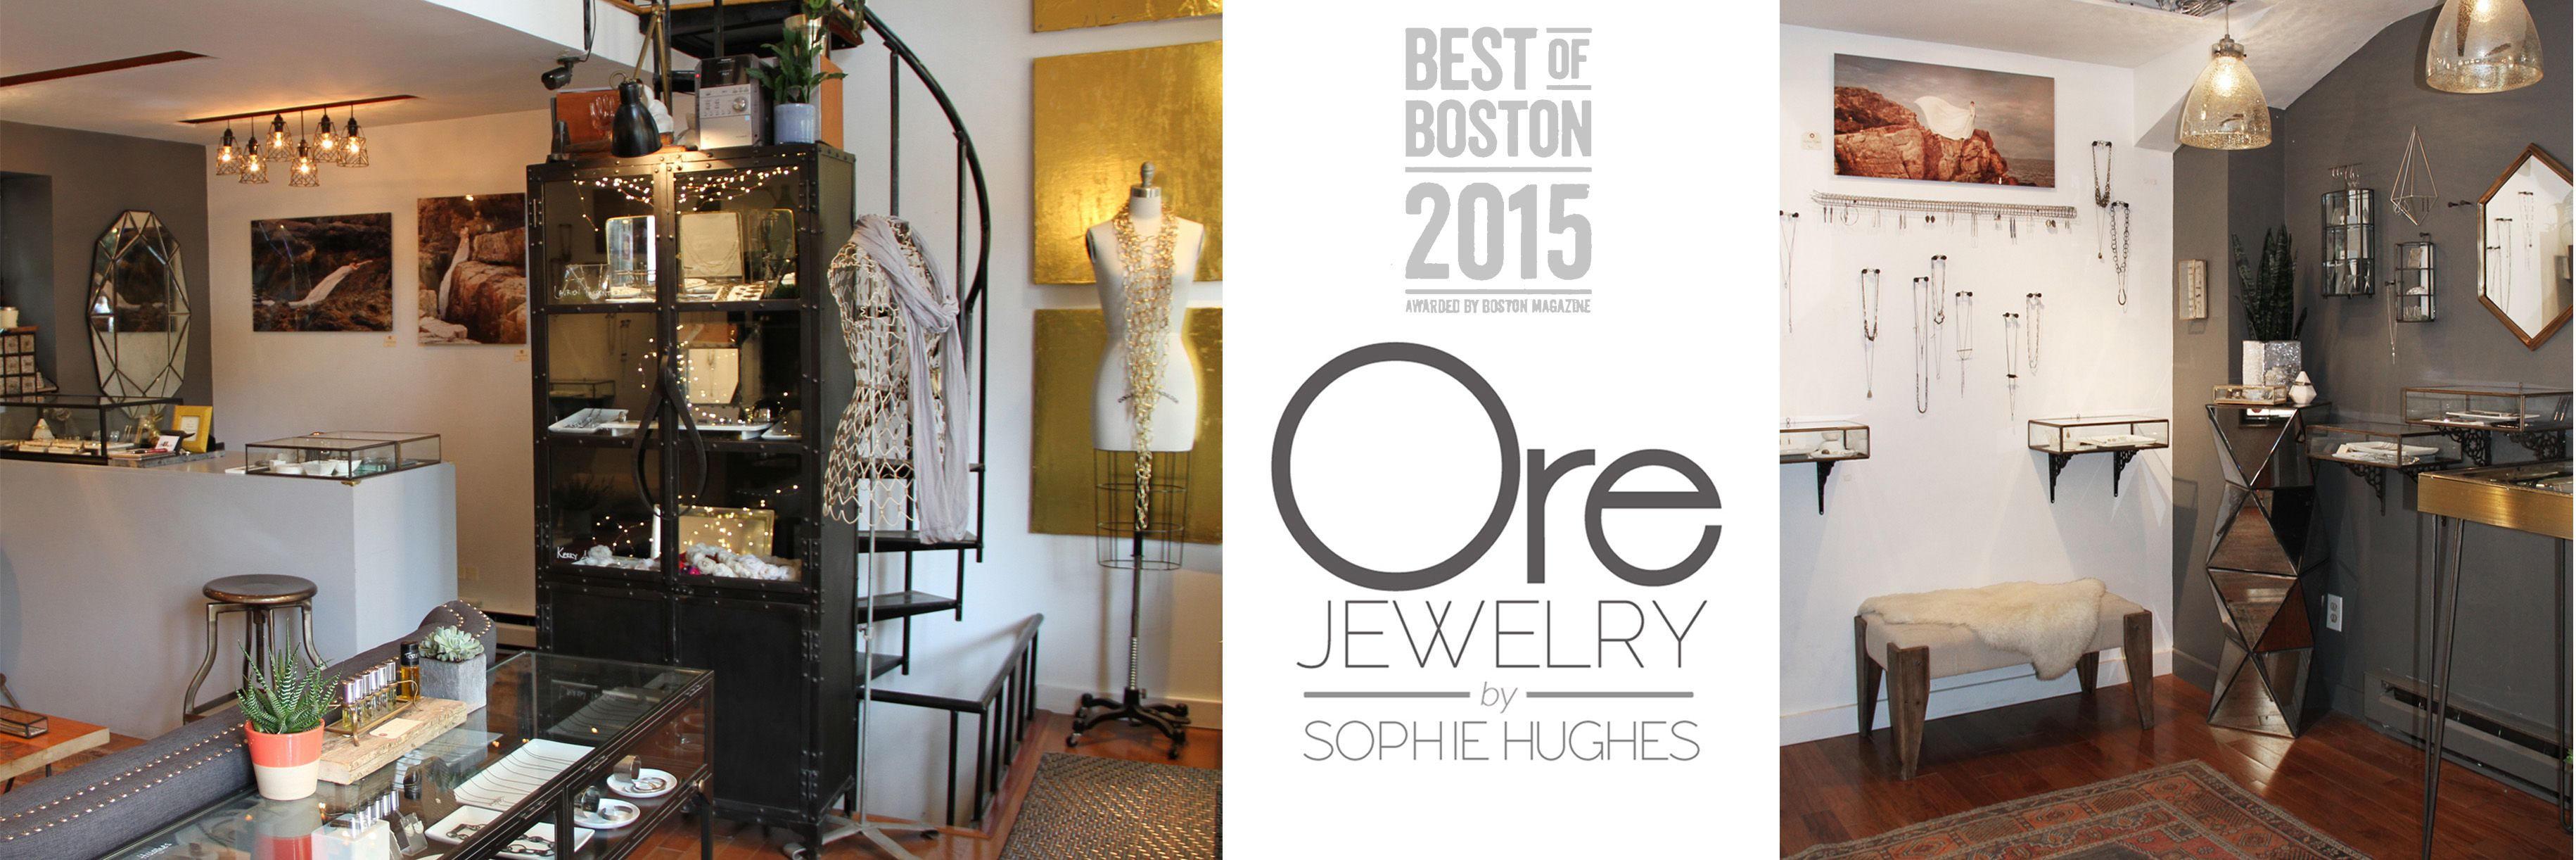 33++ Jewelry store south end boston info